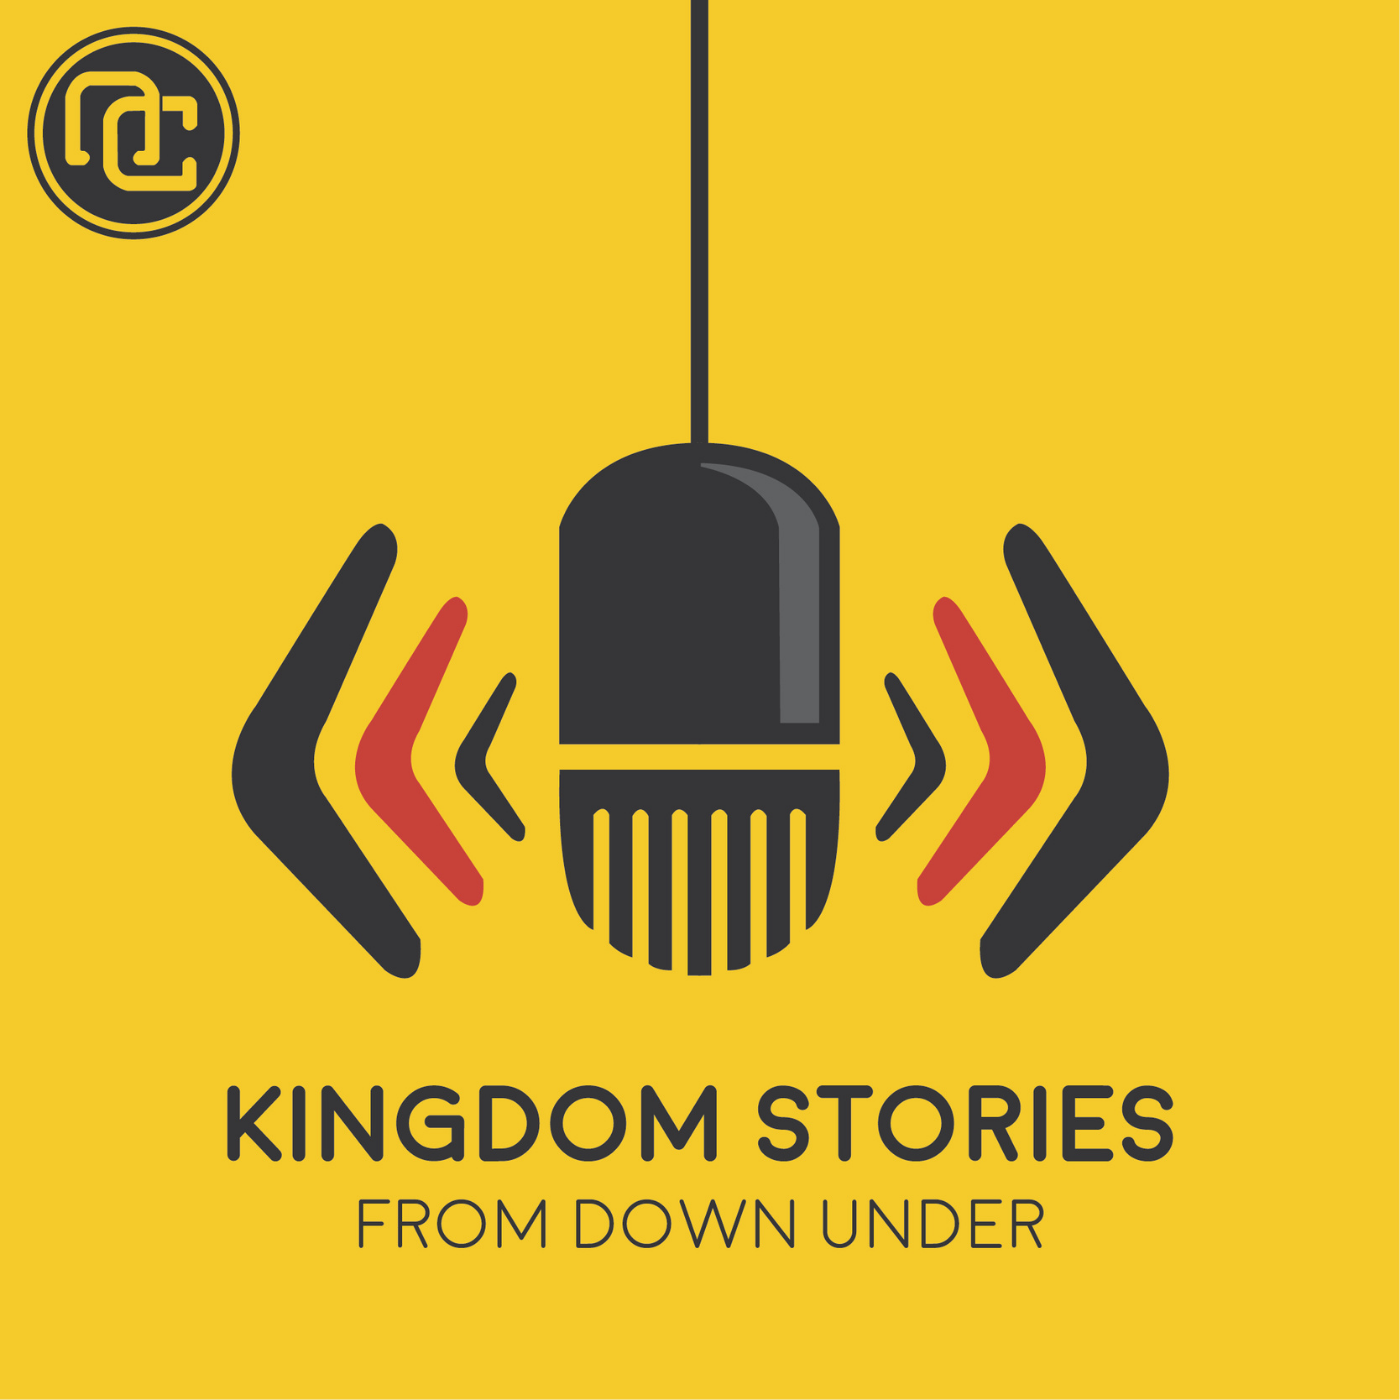 Artwork for podcast Kingdom Stories from Down Under